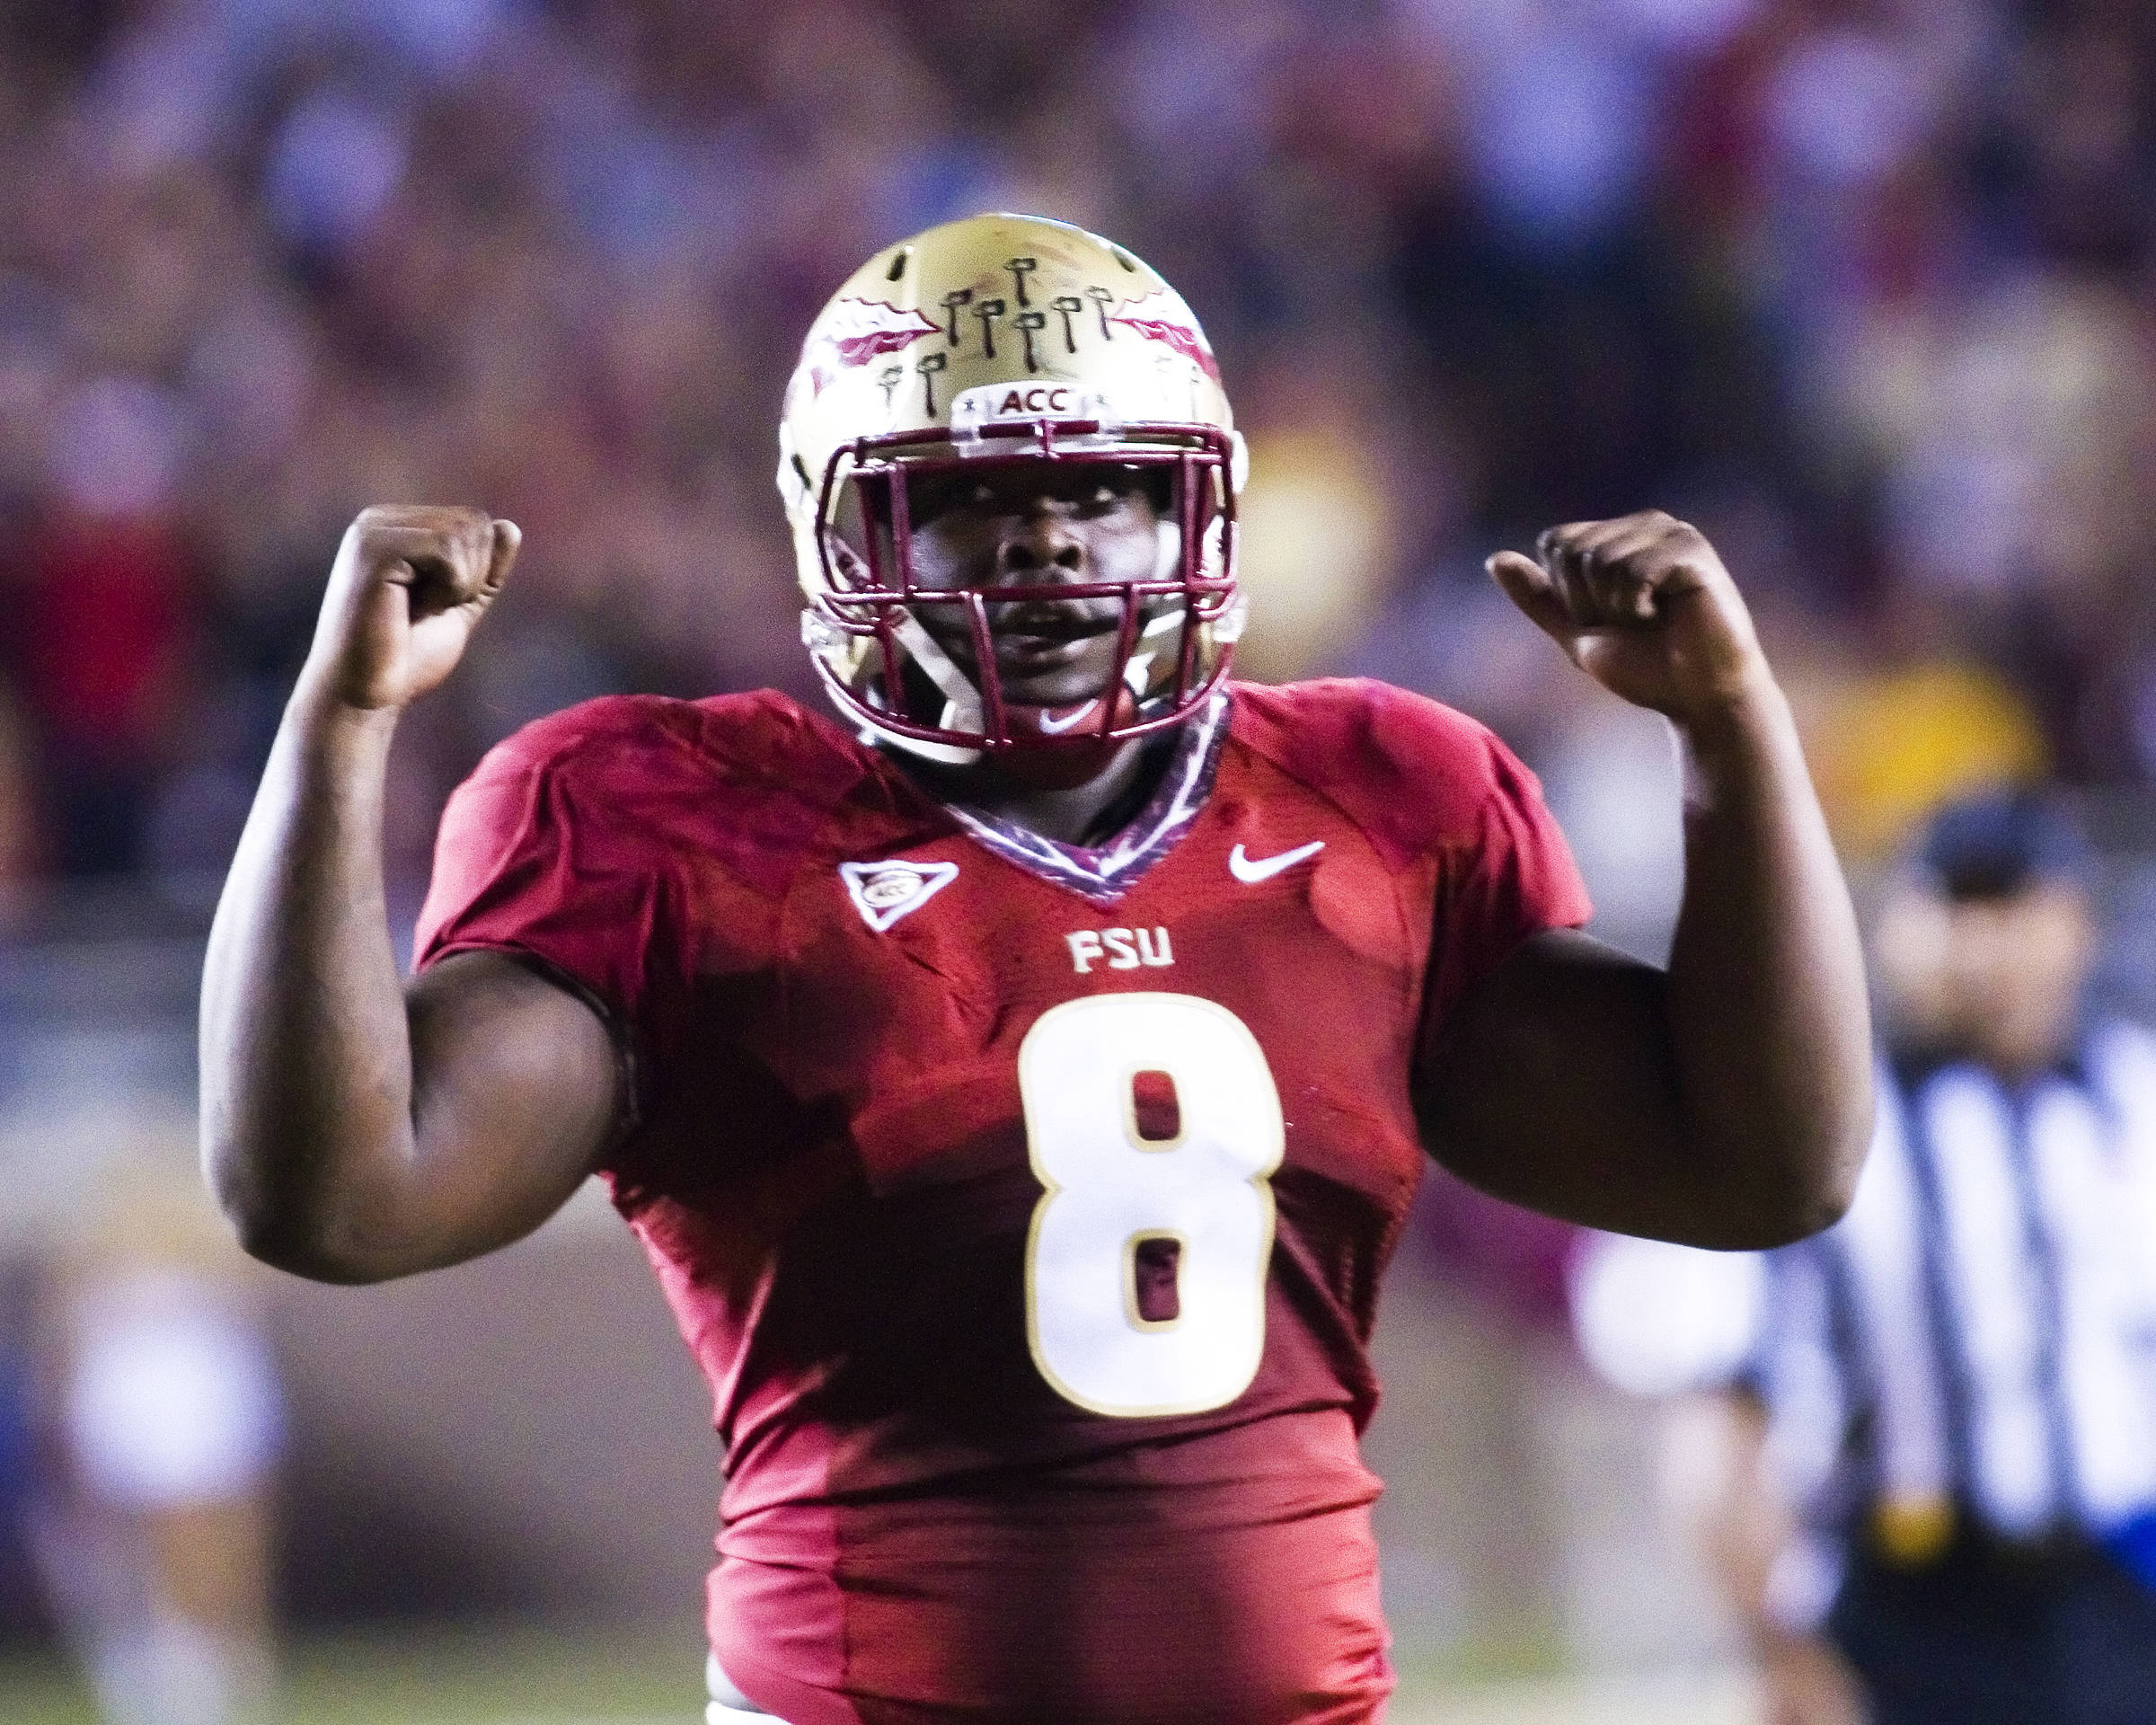 Timmy Jernigan (8), FSU vs Virginia, 11/19/2011